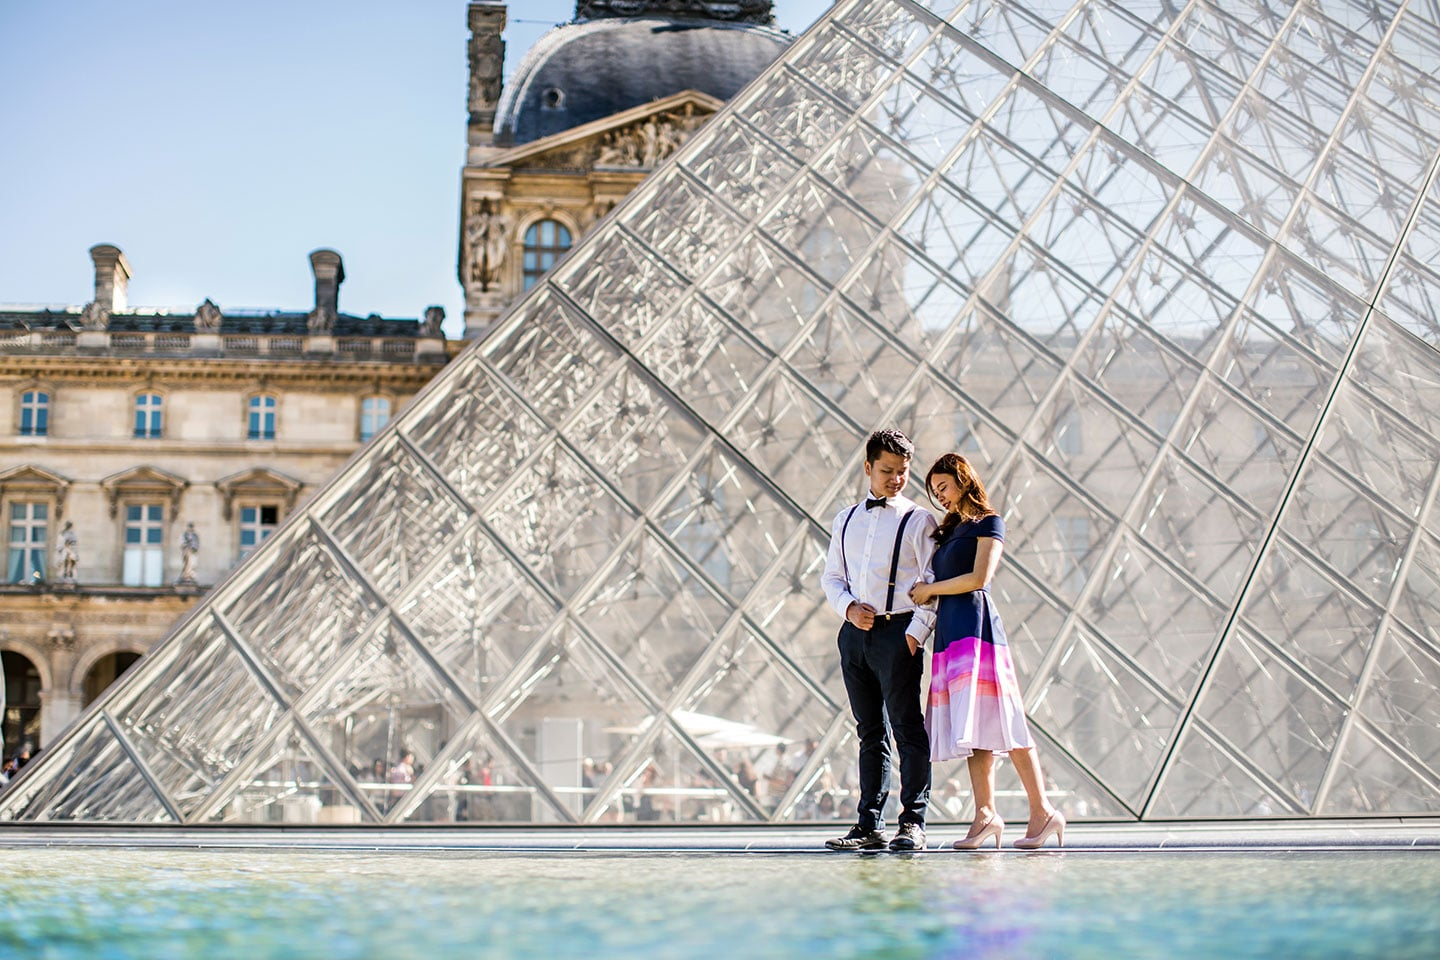 Prewedding photoshoot Paris in front of the Louvre Museum glass pyramid